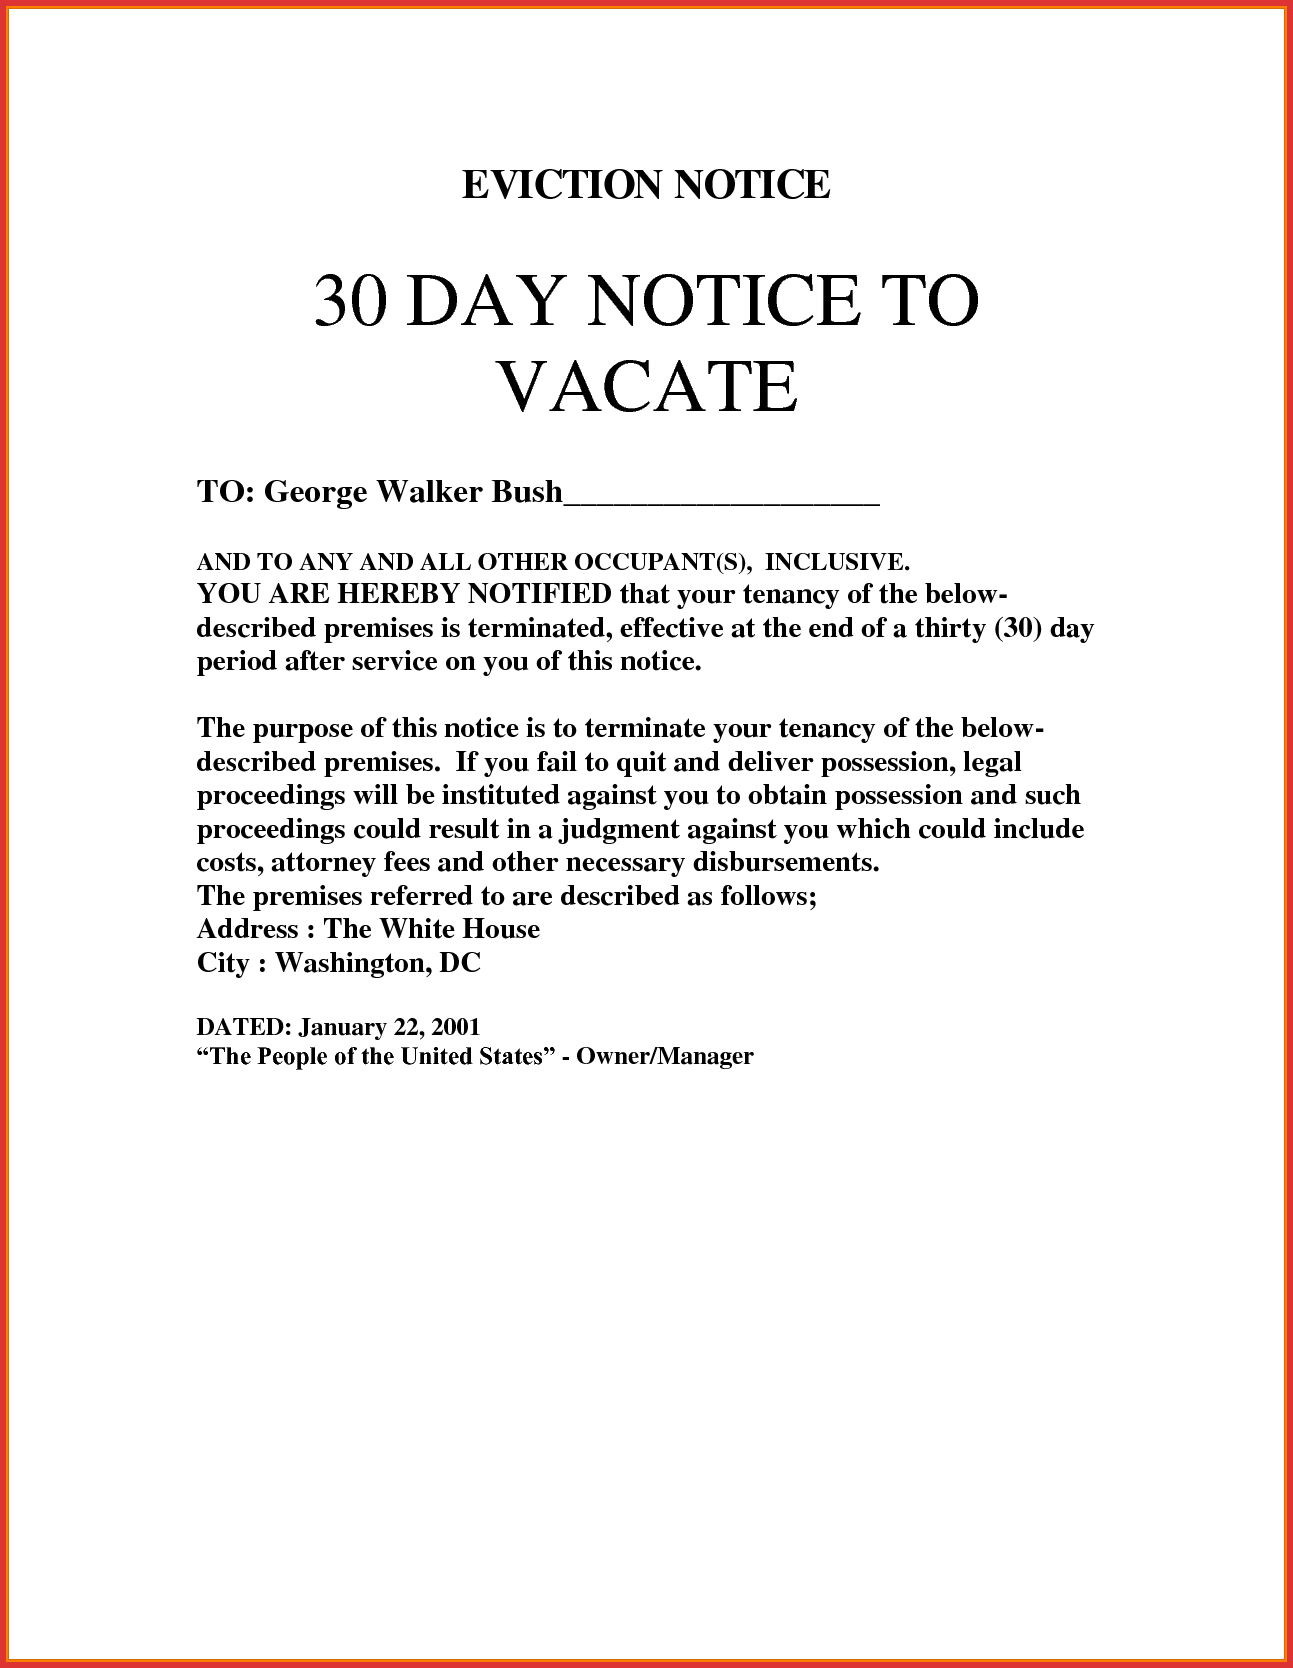 30 Day Eviction Letter Template - Resignation Letter Days Notice Day to Vacate Sample Best Eviction